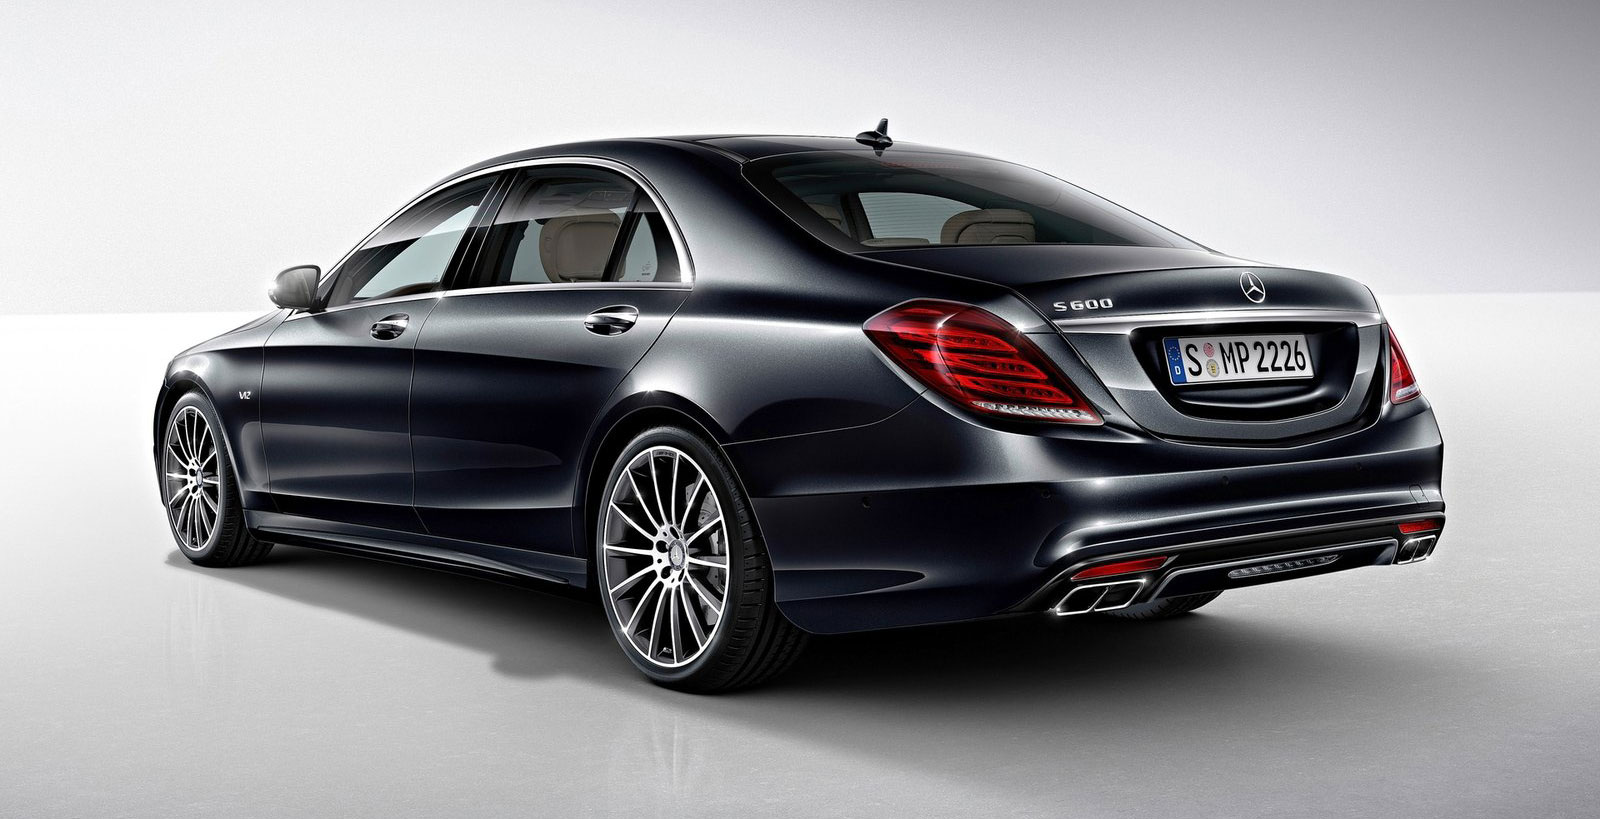 Mercedes benz s600 debuts in detroit the v12 w222 for Mercedes benz flagship car